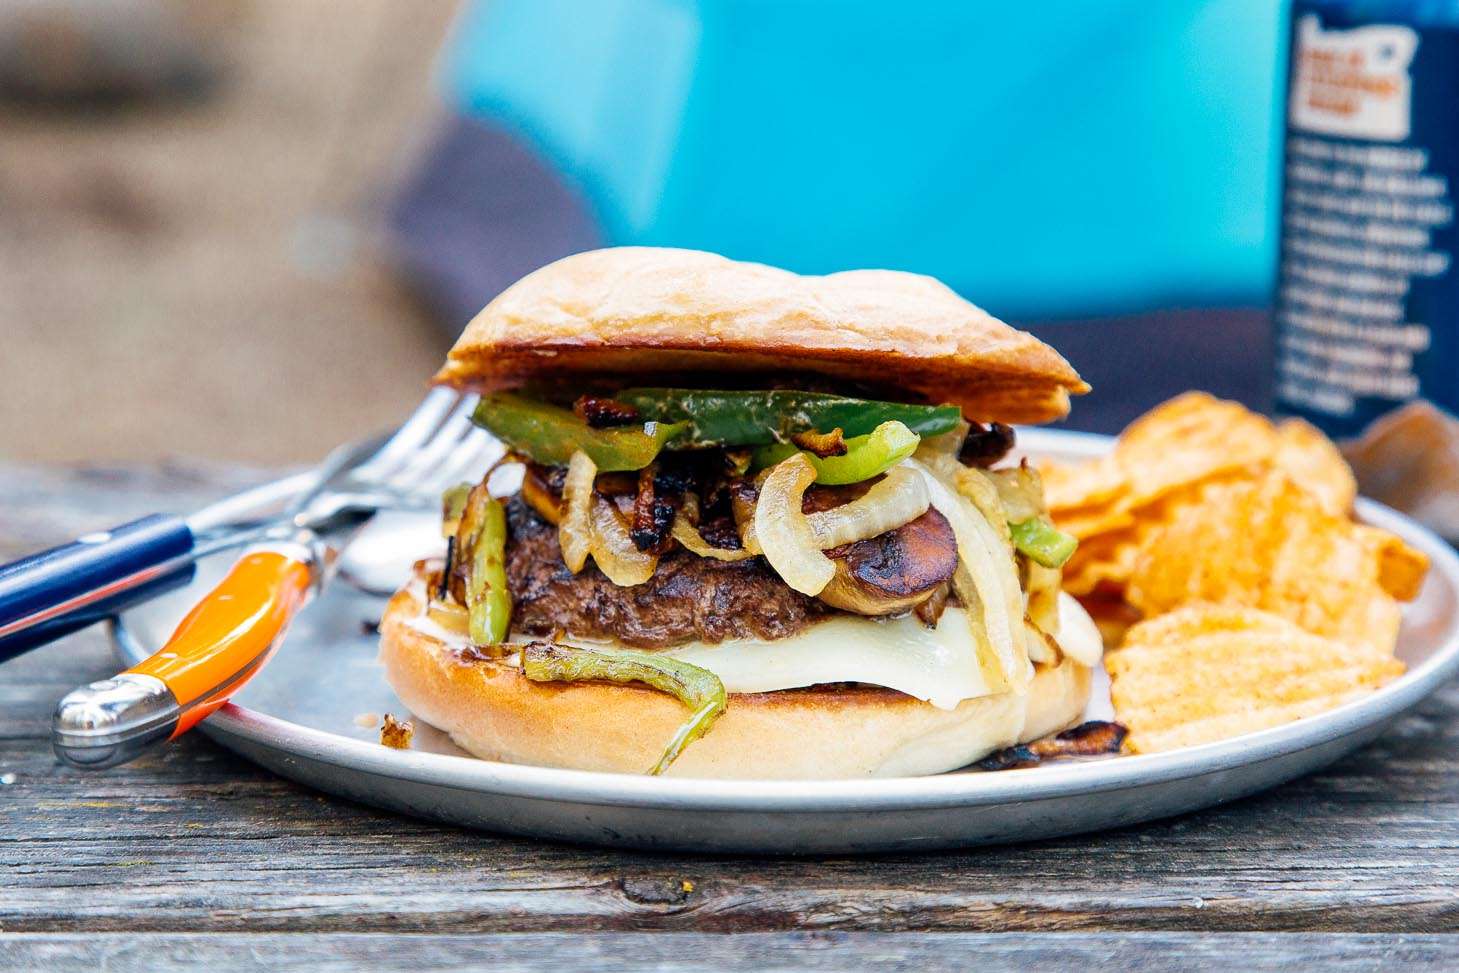 A burger topped with green peppers and onions on a blue plate and camping scene in the background